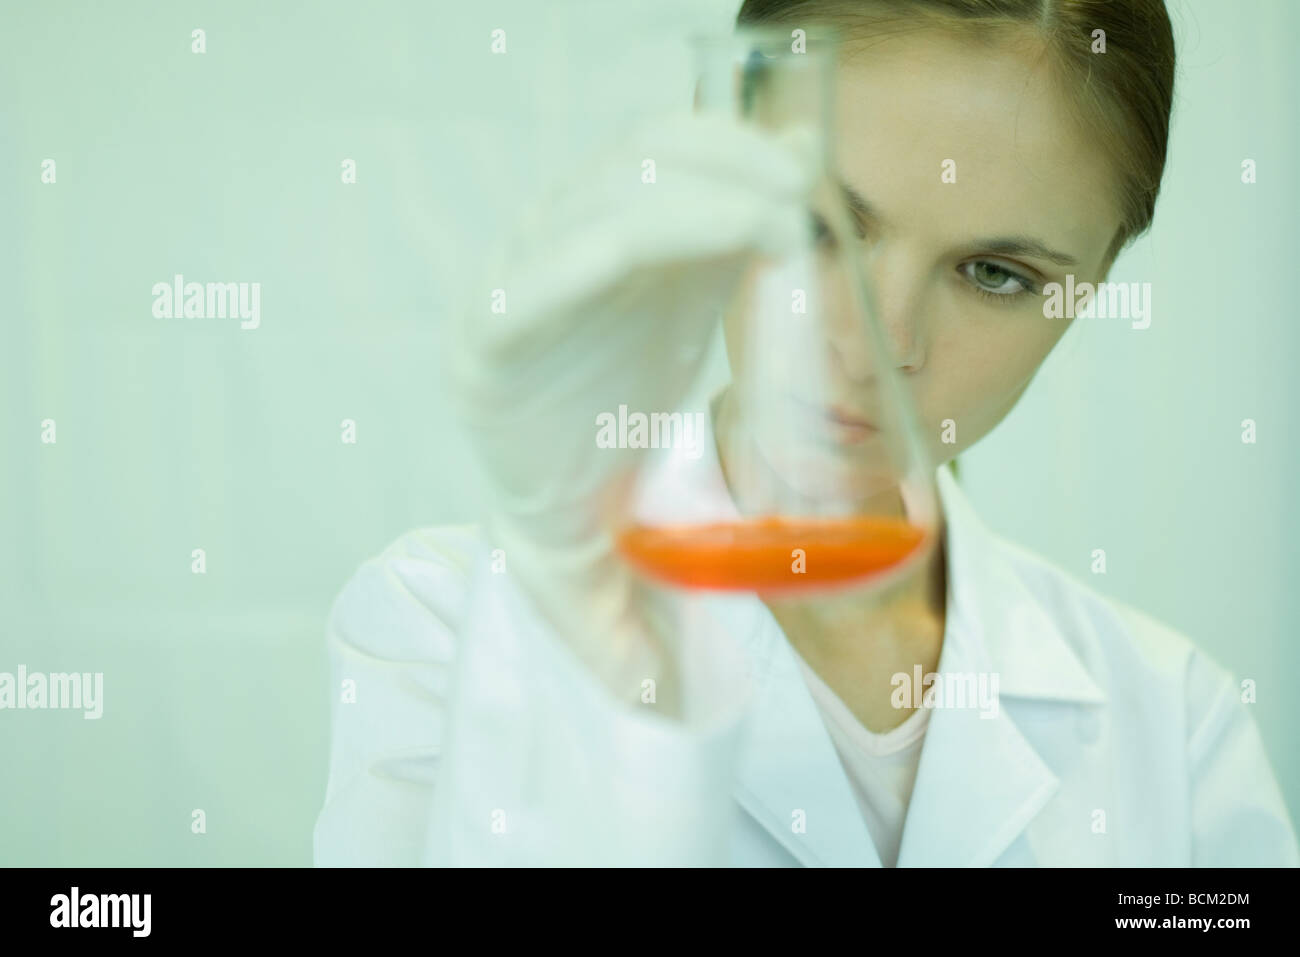 Female scientist holding up beaker with liquid inside, looking down, close-up - Stock Image